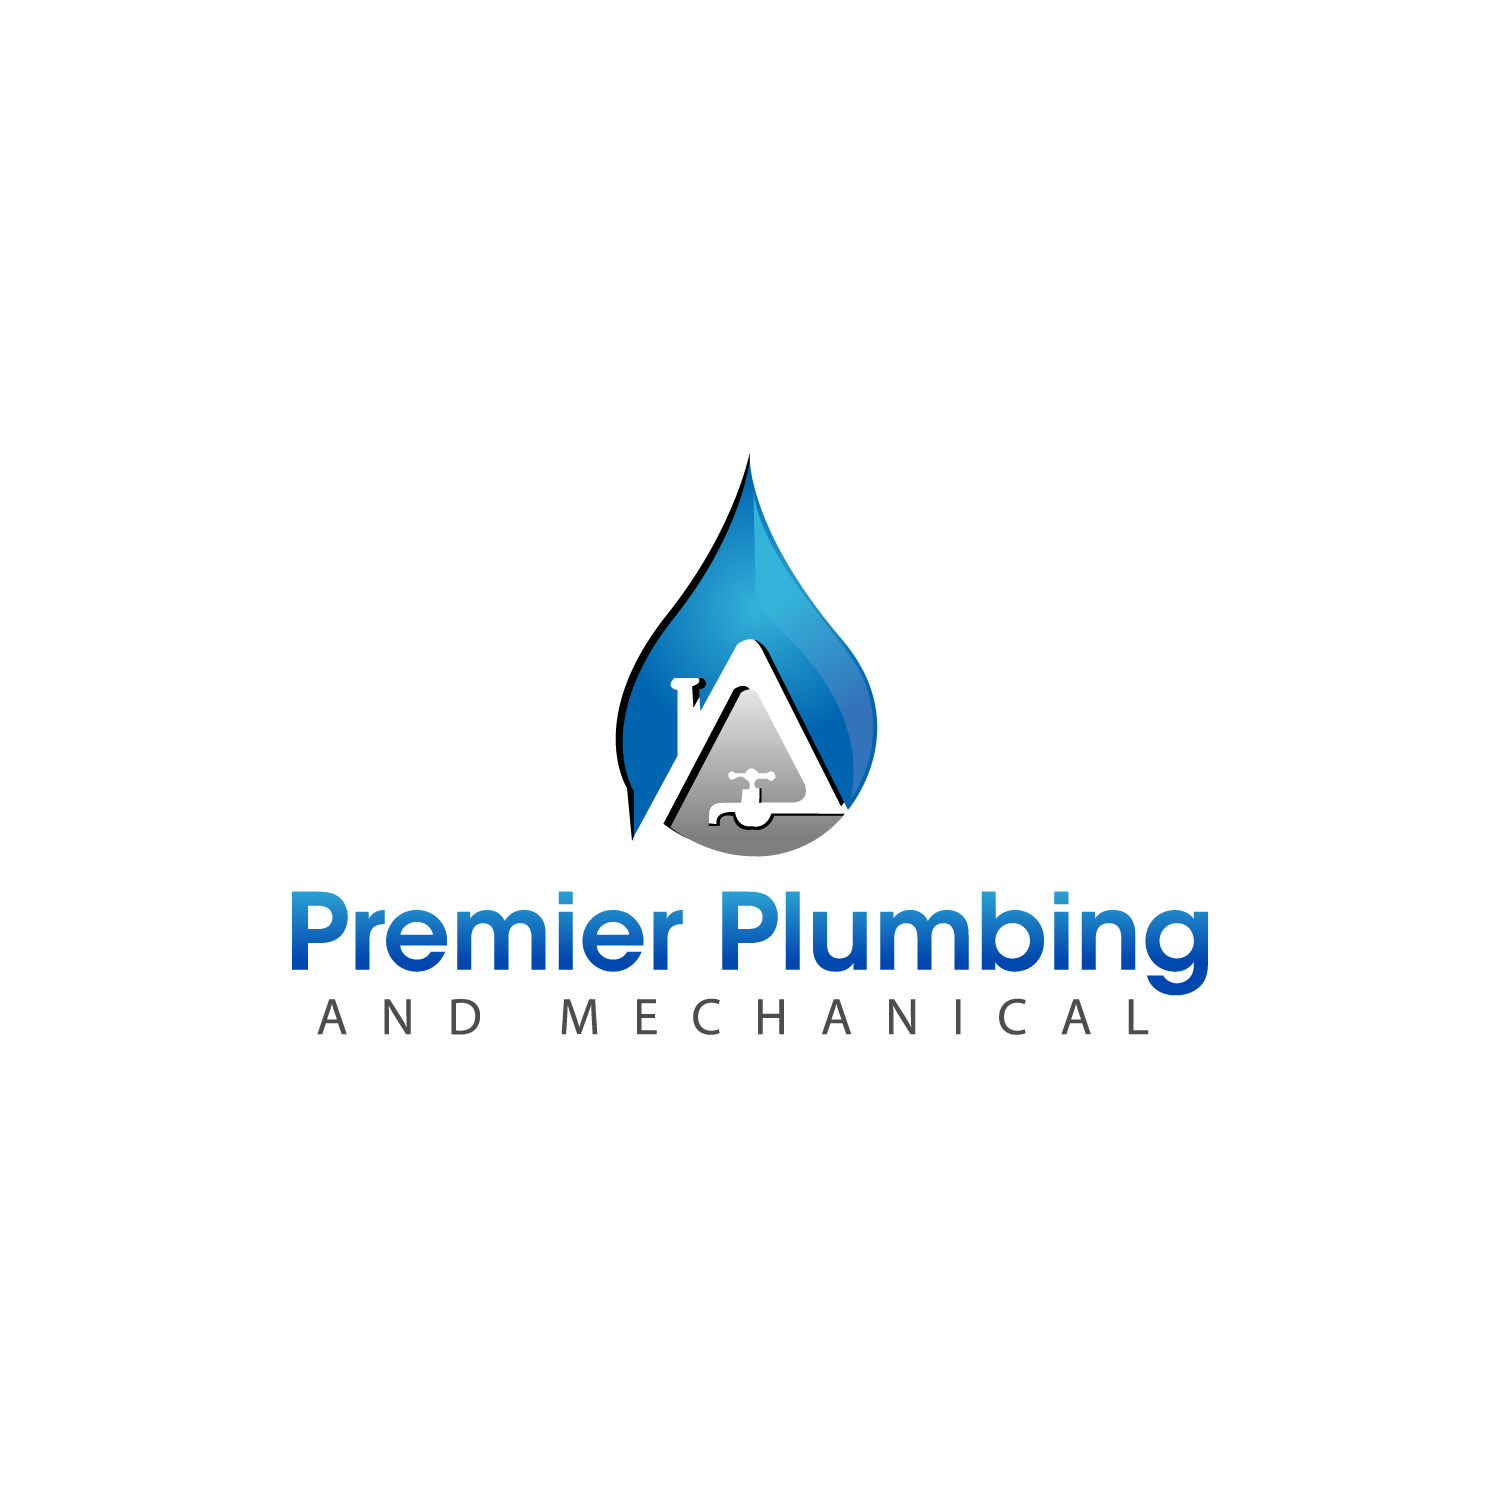 Premier Plumbing and Mechanical